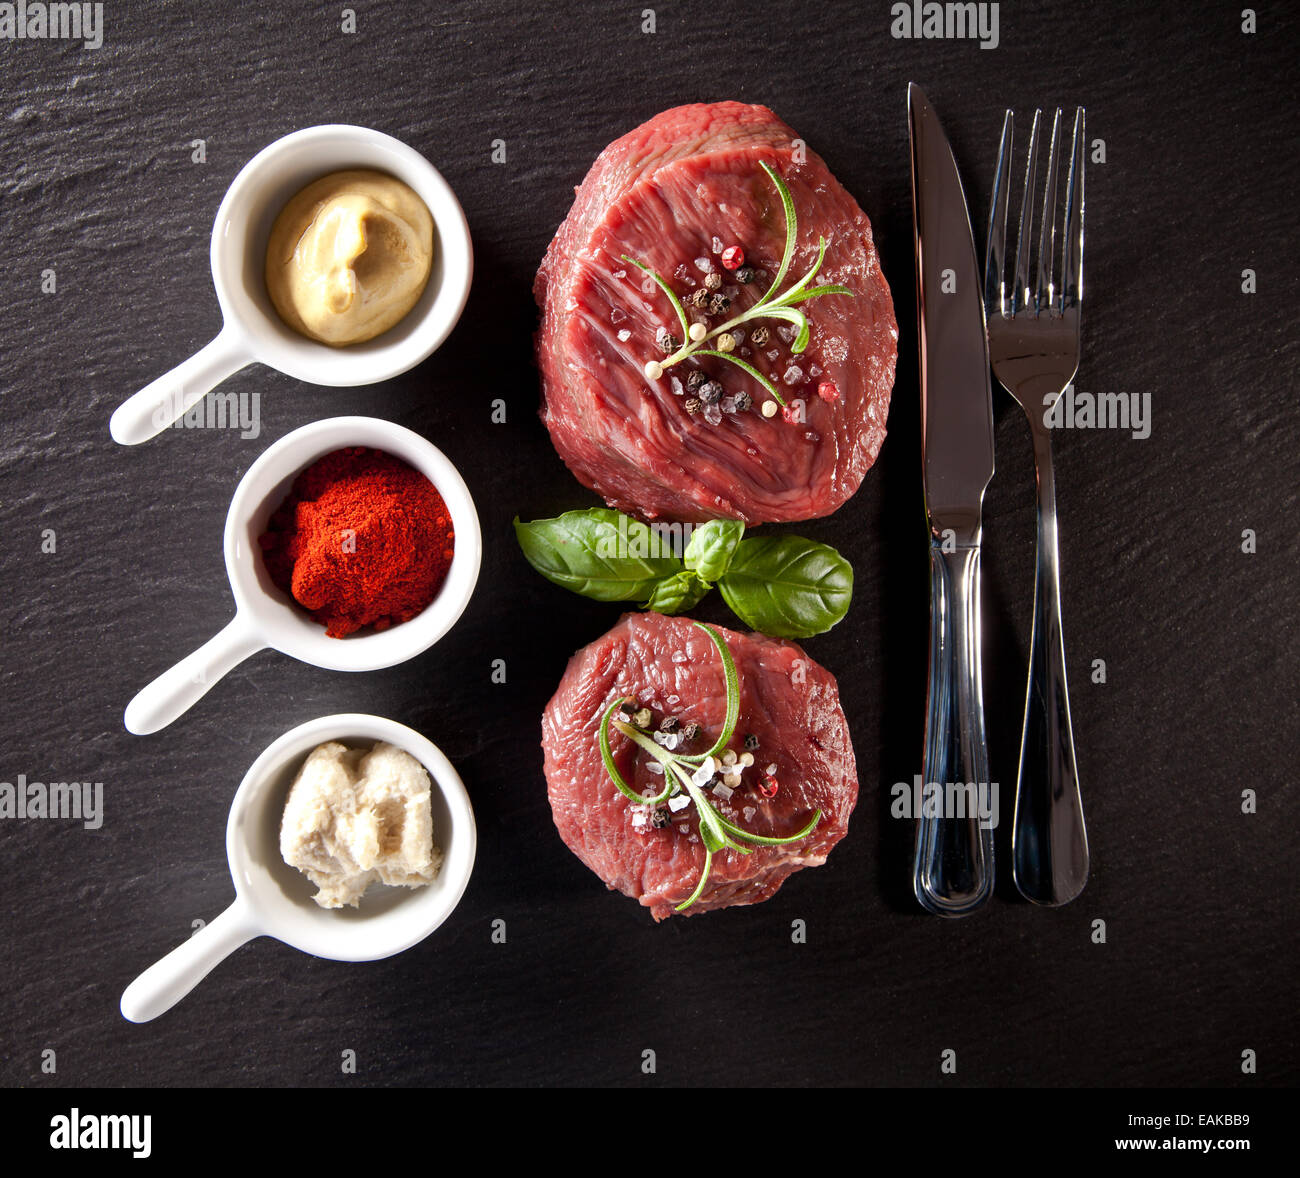 Pieces of red raw meat steaks with herbs, served on black stone surface. Shot from upper view. Stock Photo